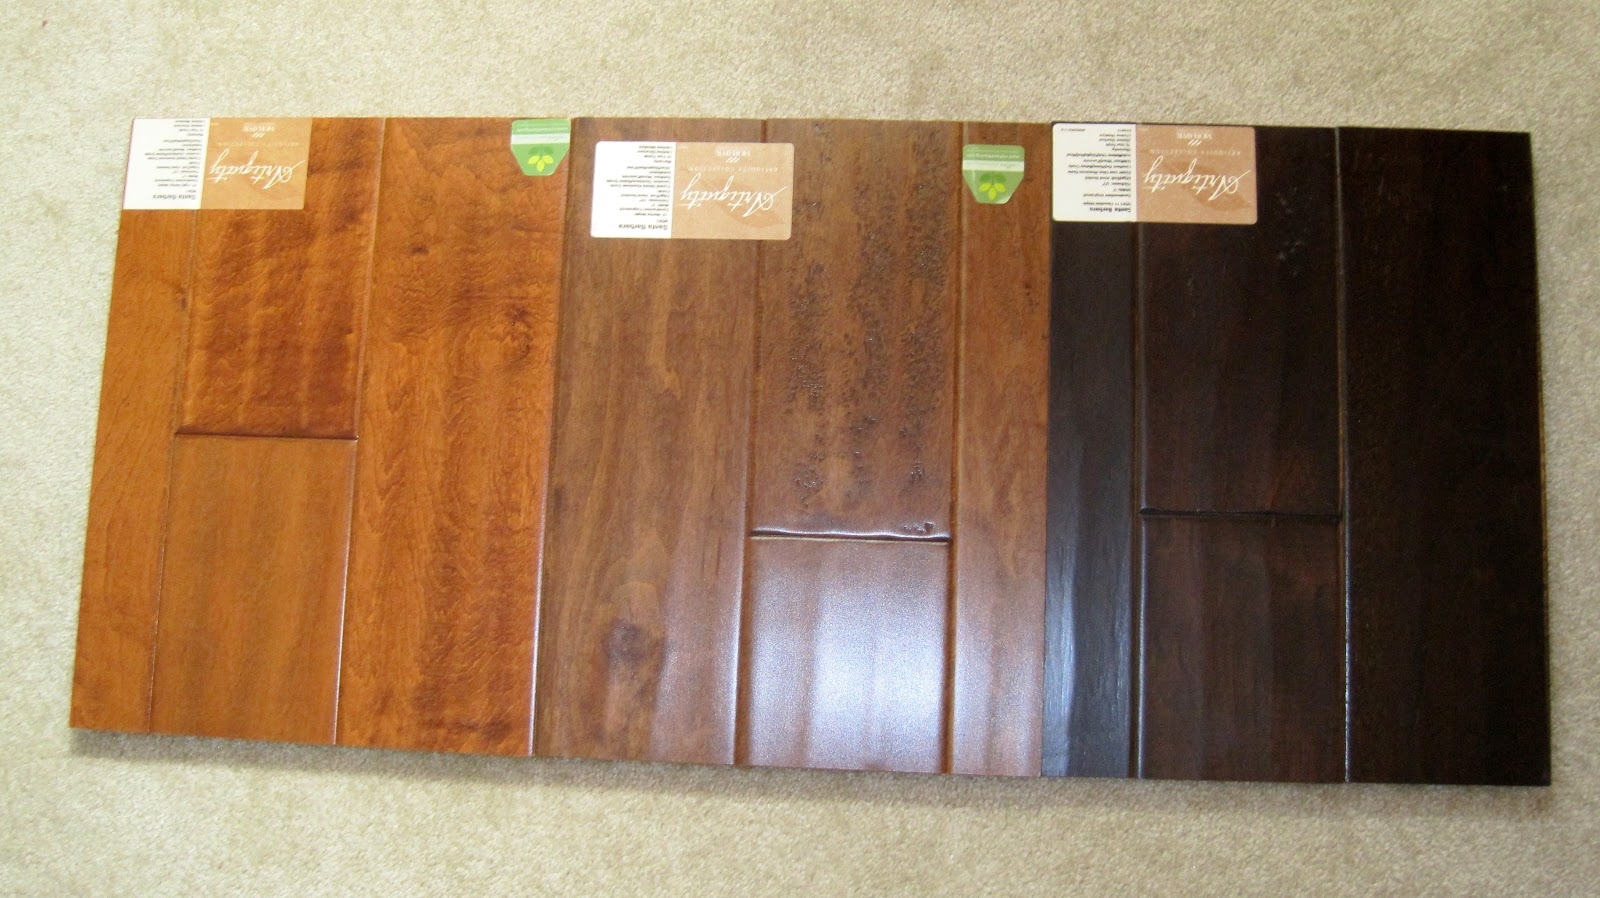 I married a tree hugger hardwood choices for Hardwood floors stain colors